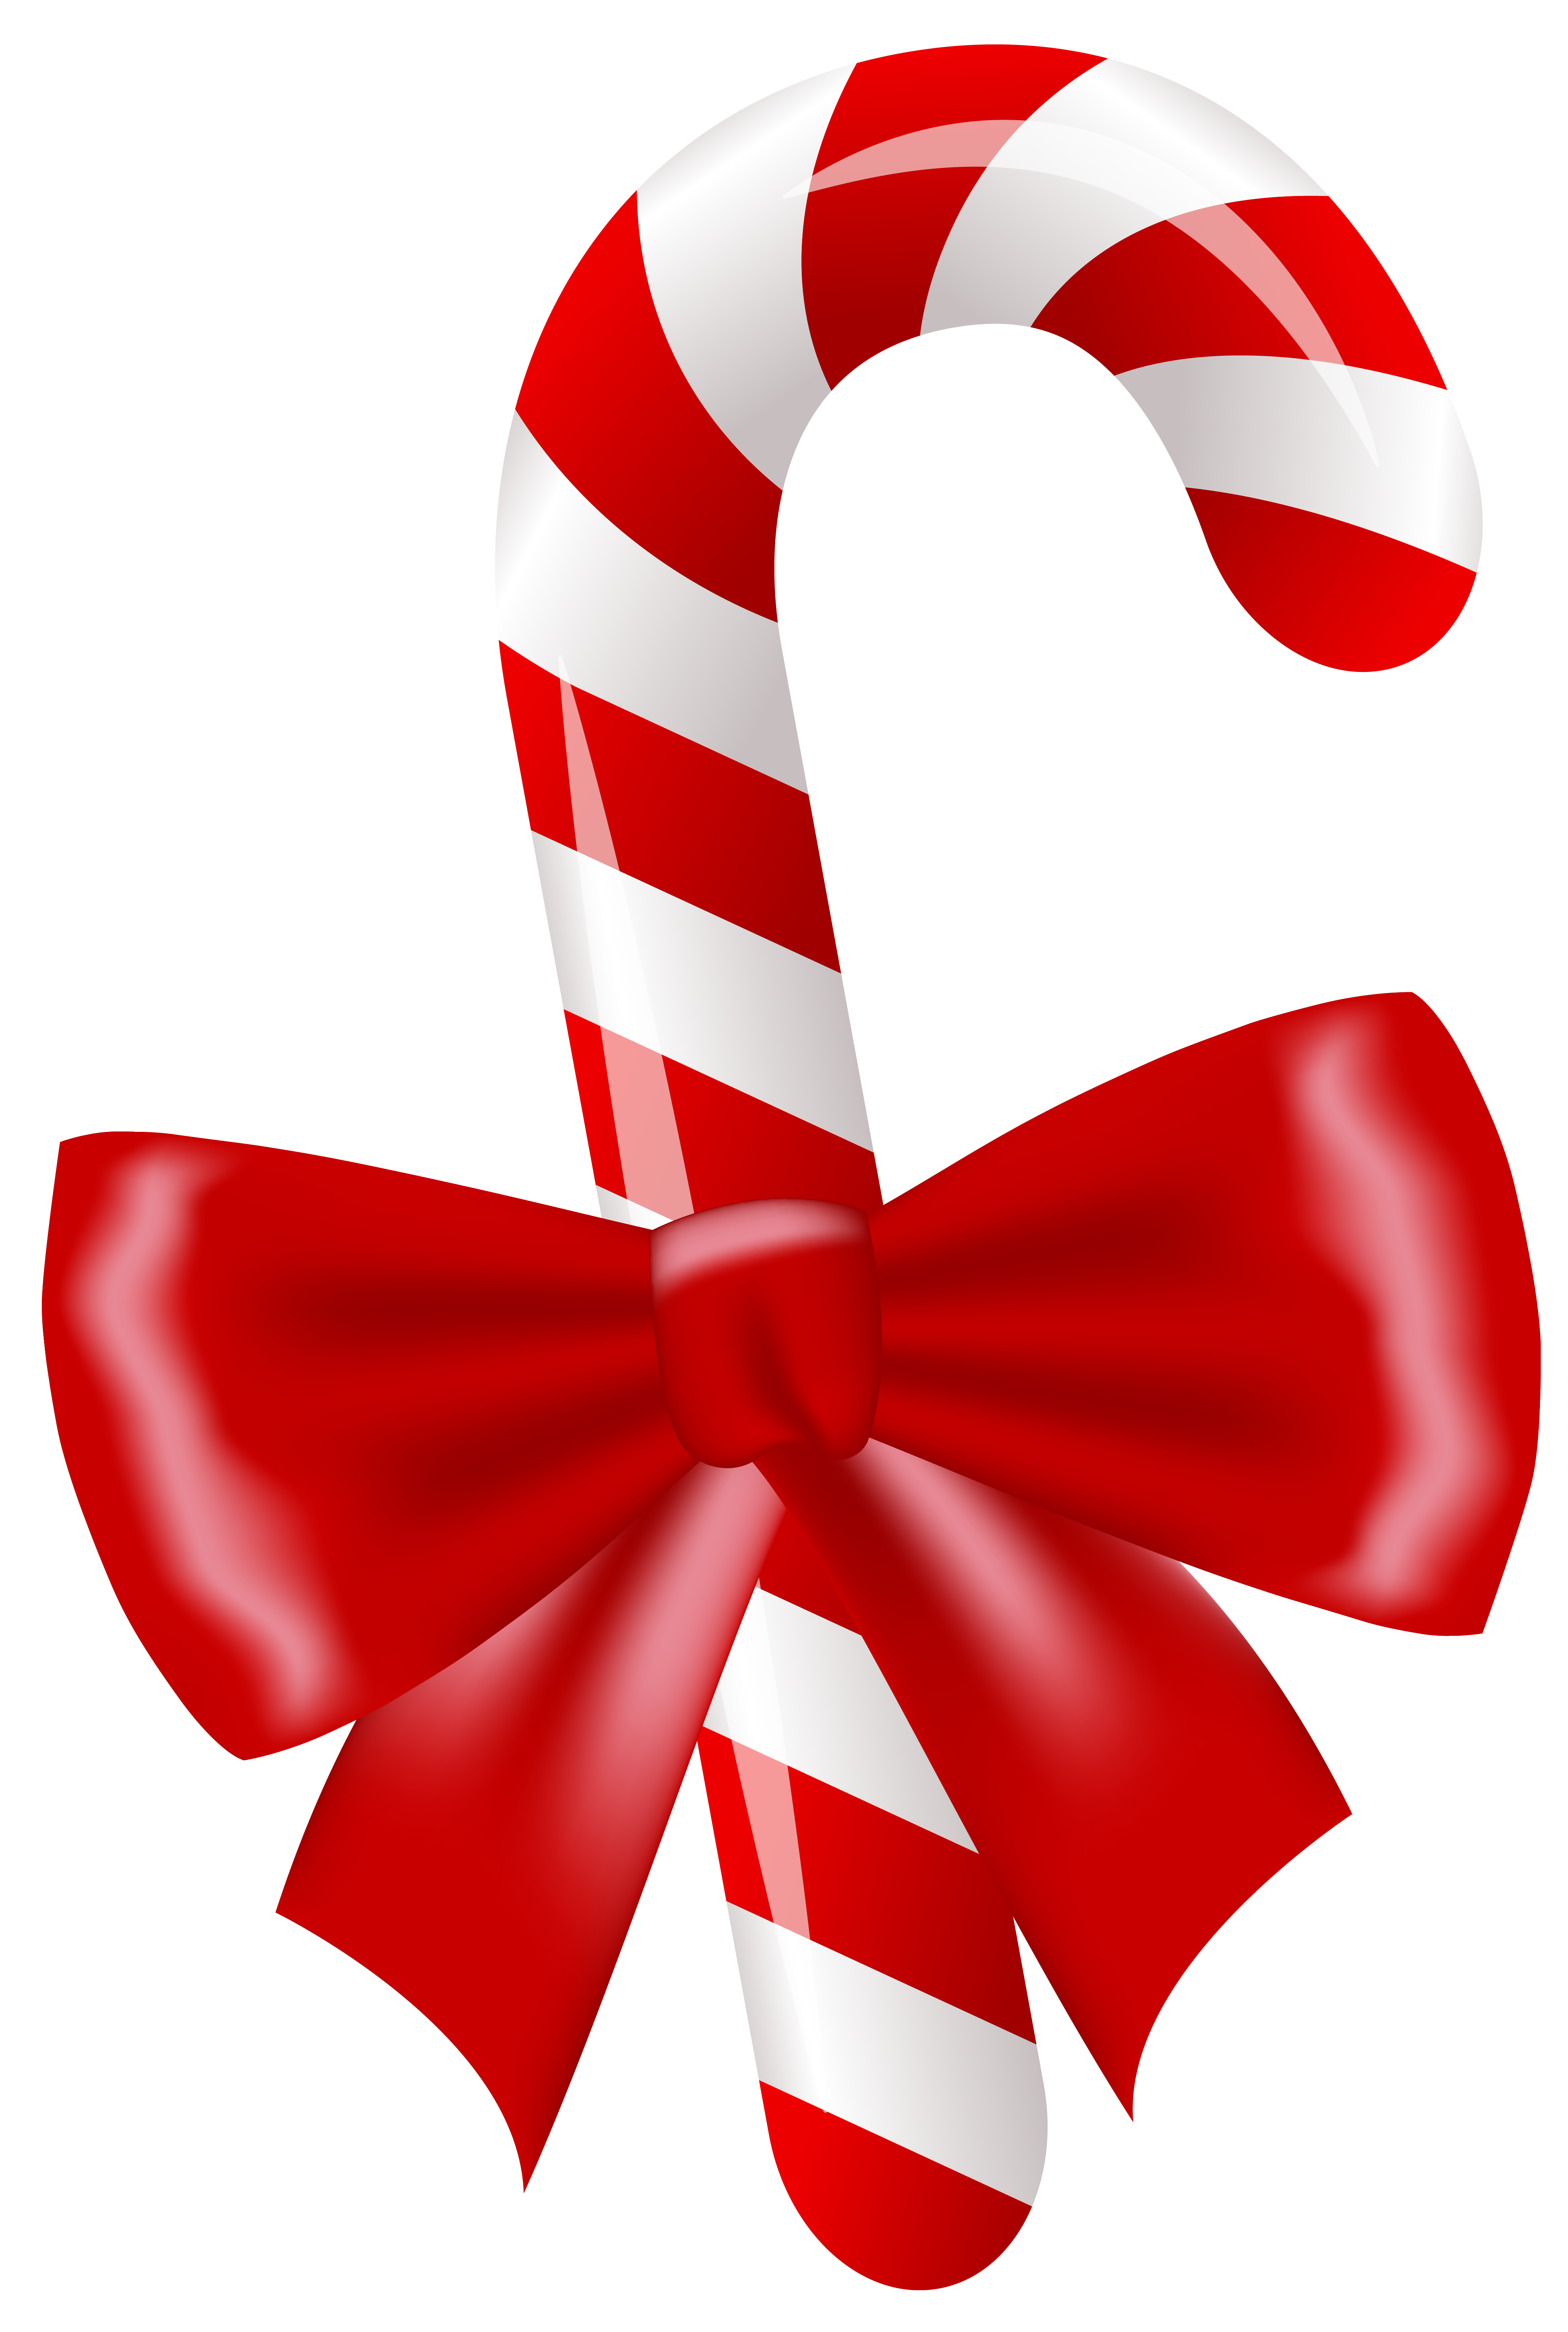 Christmas candy cane clipart graphic royalty free library Christmas Candy Cane PNG Clipart Image | Gallery Yopriceville ... graphic royalty free library